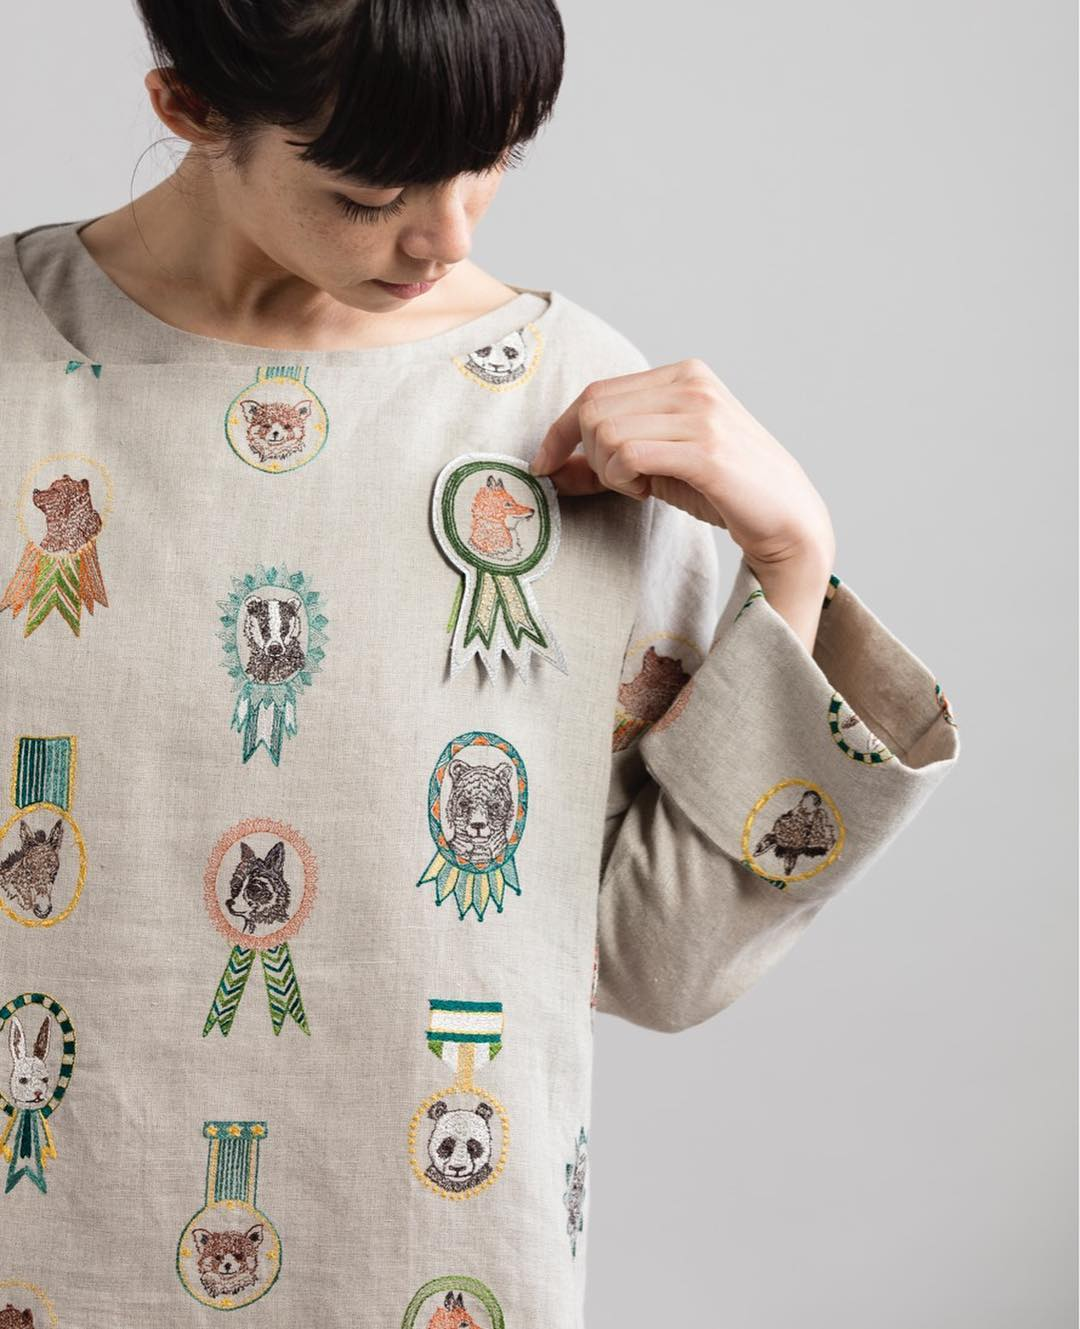 Embroidery by Coral & Tusk